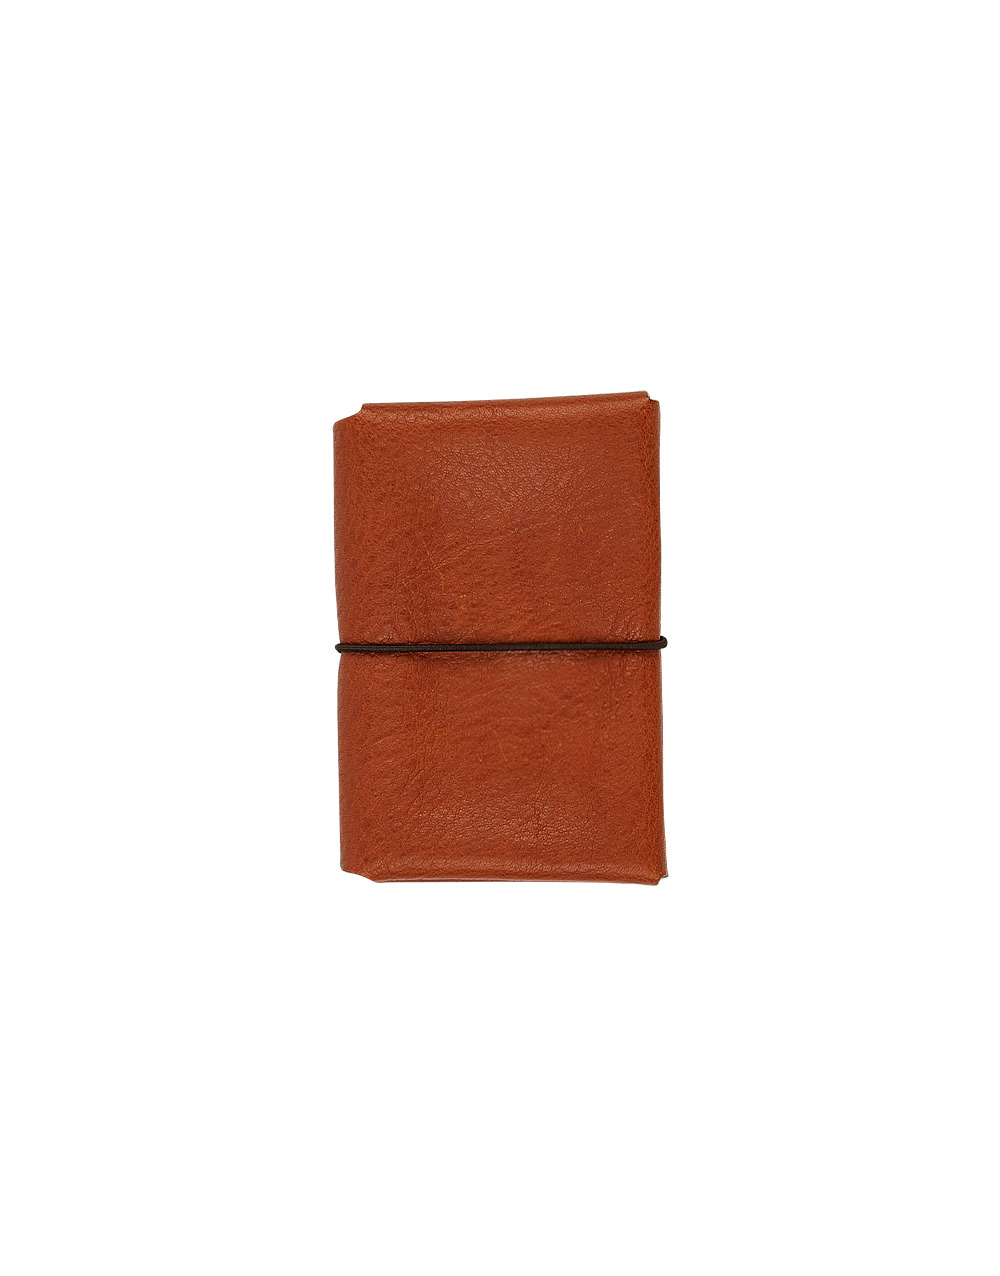 DURAM FACTORY CARD HOLDER BROWN